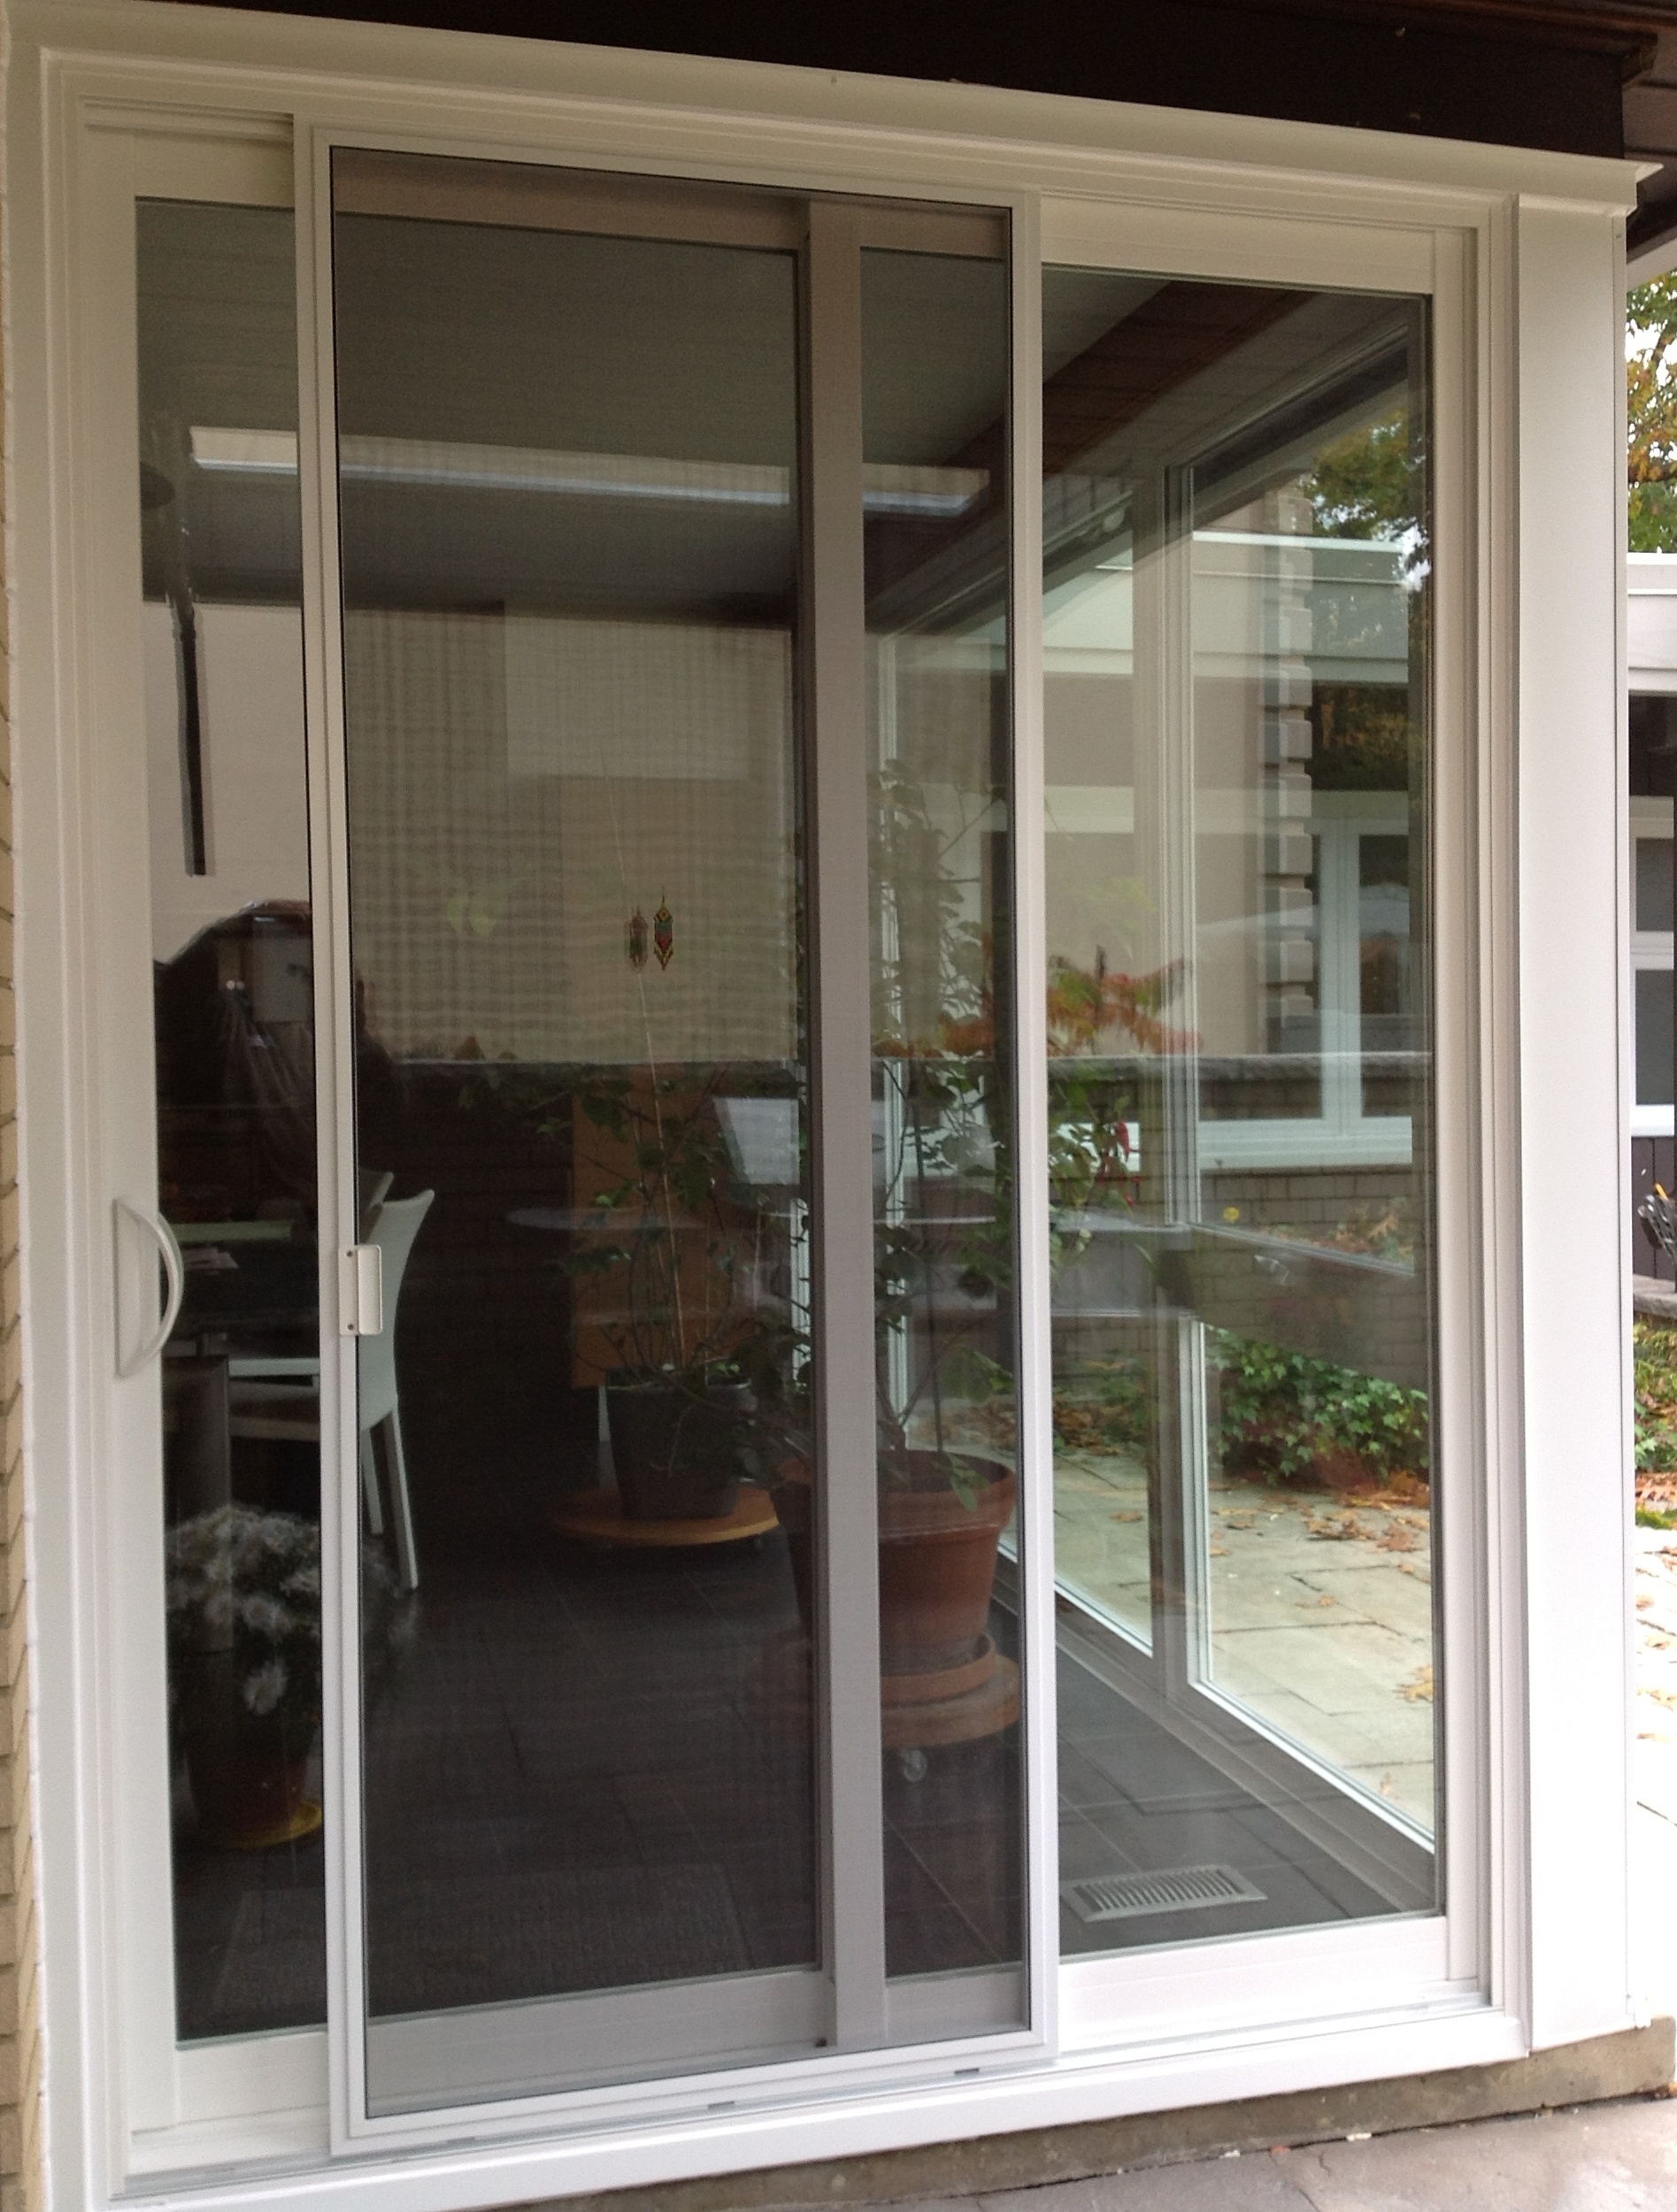 Sliding screen door for apartment balcony sliding doors for Balcony sliding screen door